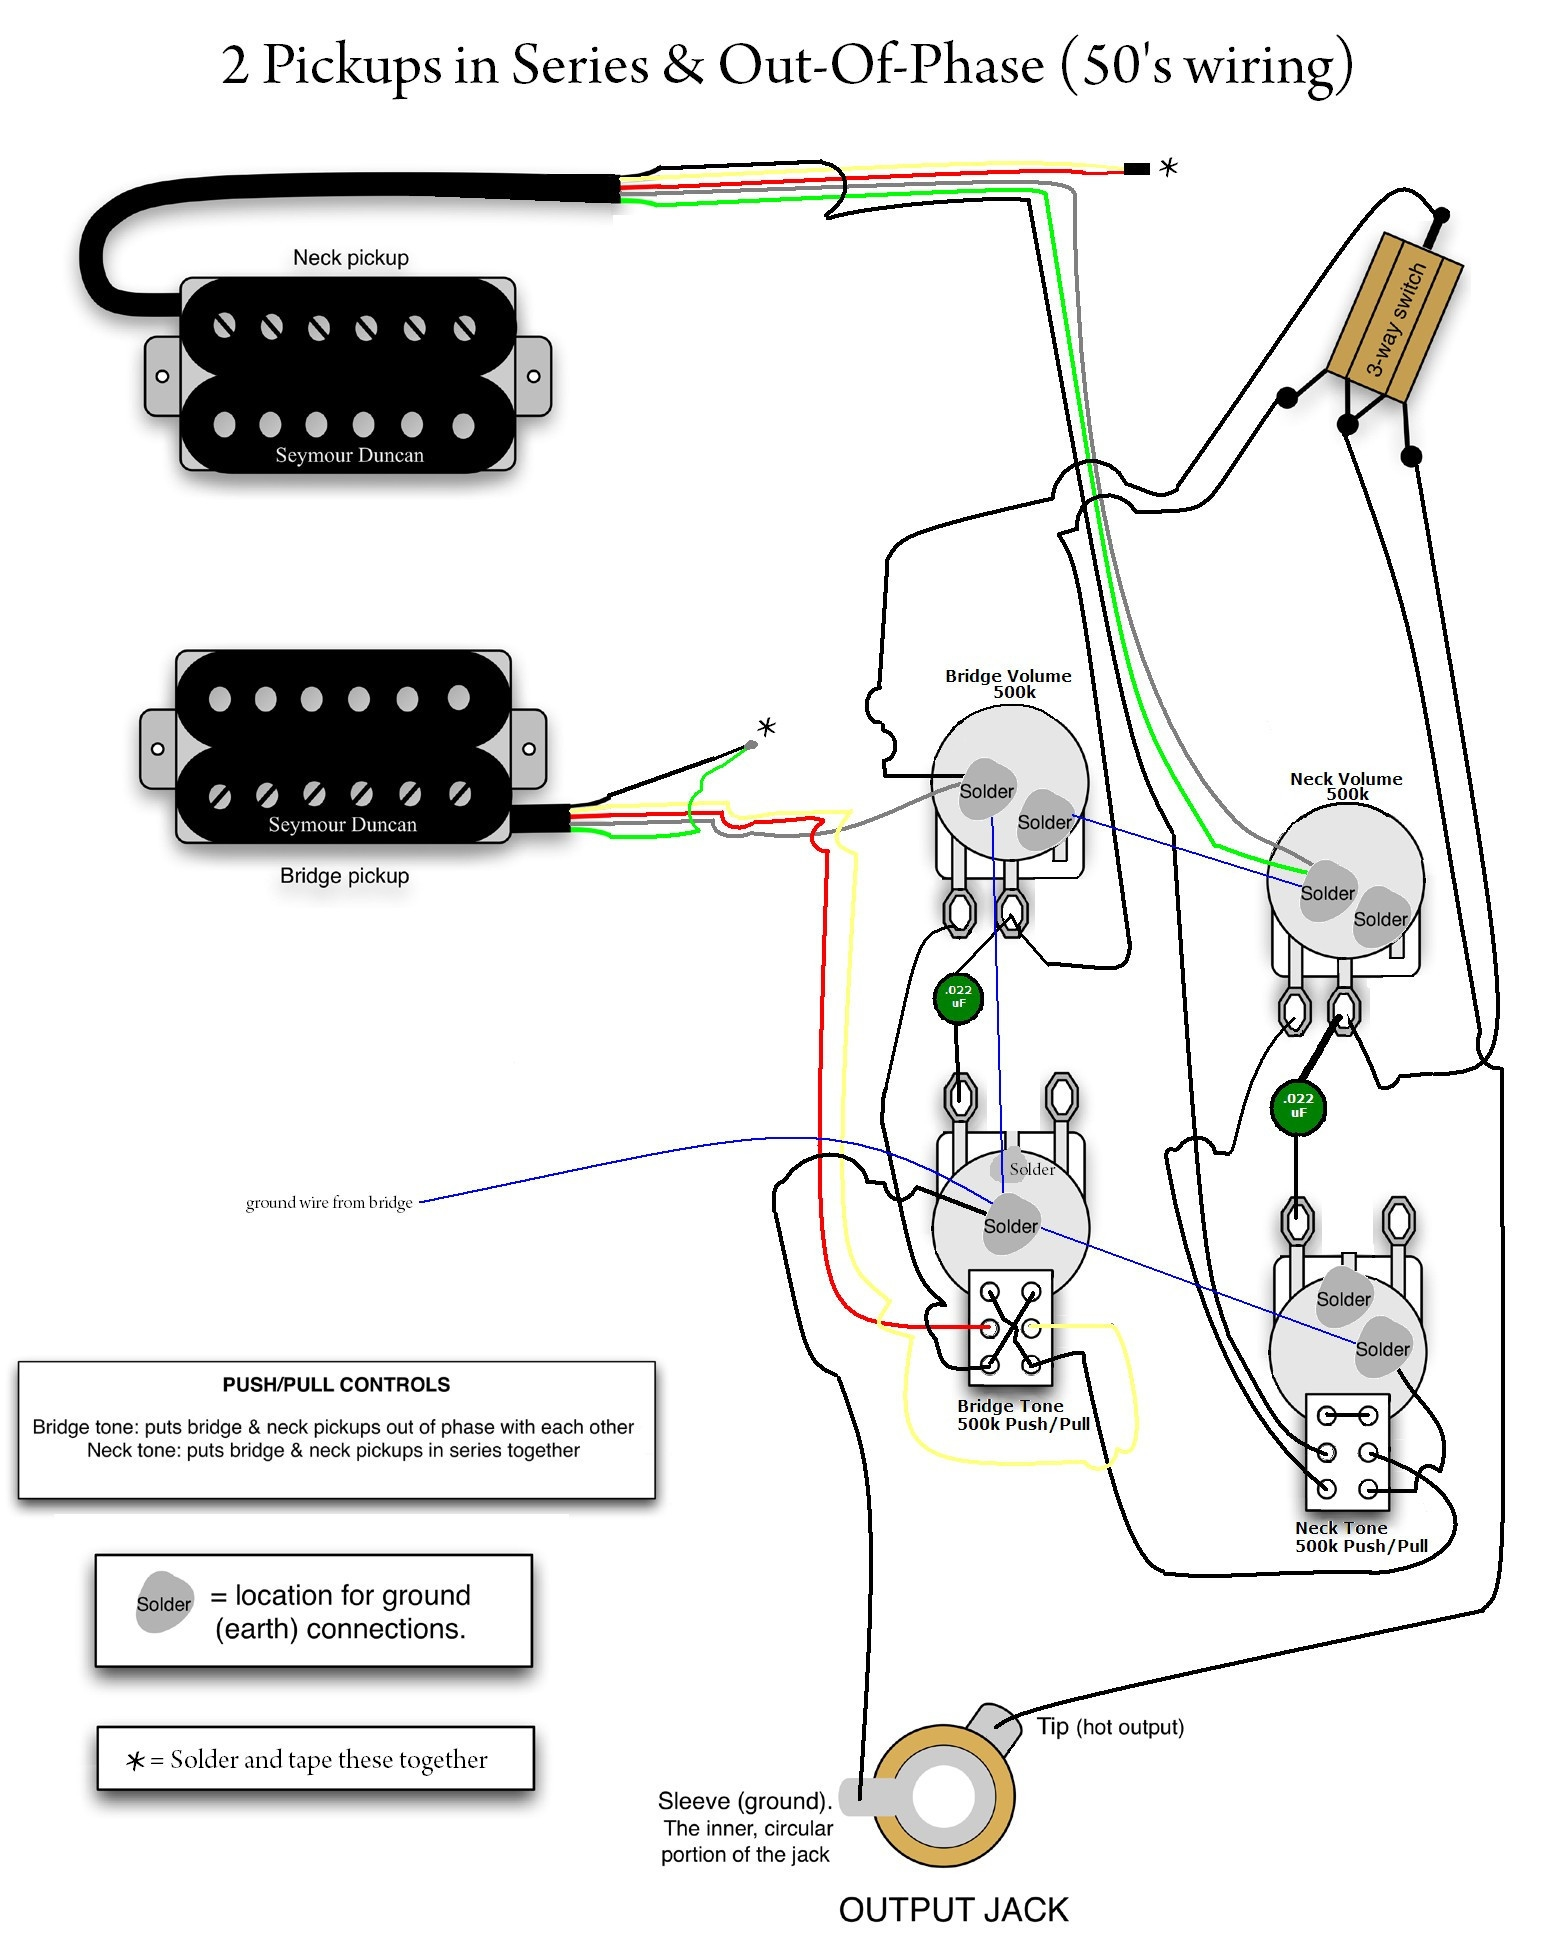 Corvair Wiring Diagram Together With 1965 Corvair Wiring Diagram On